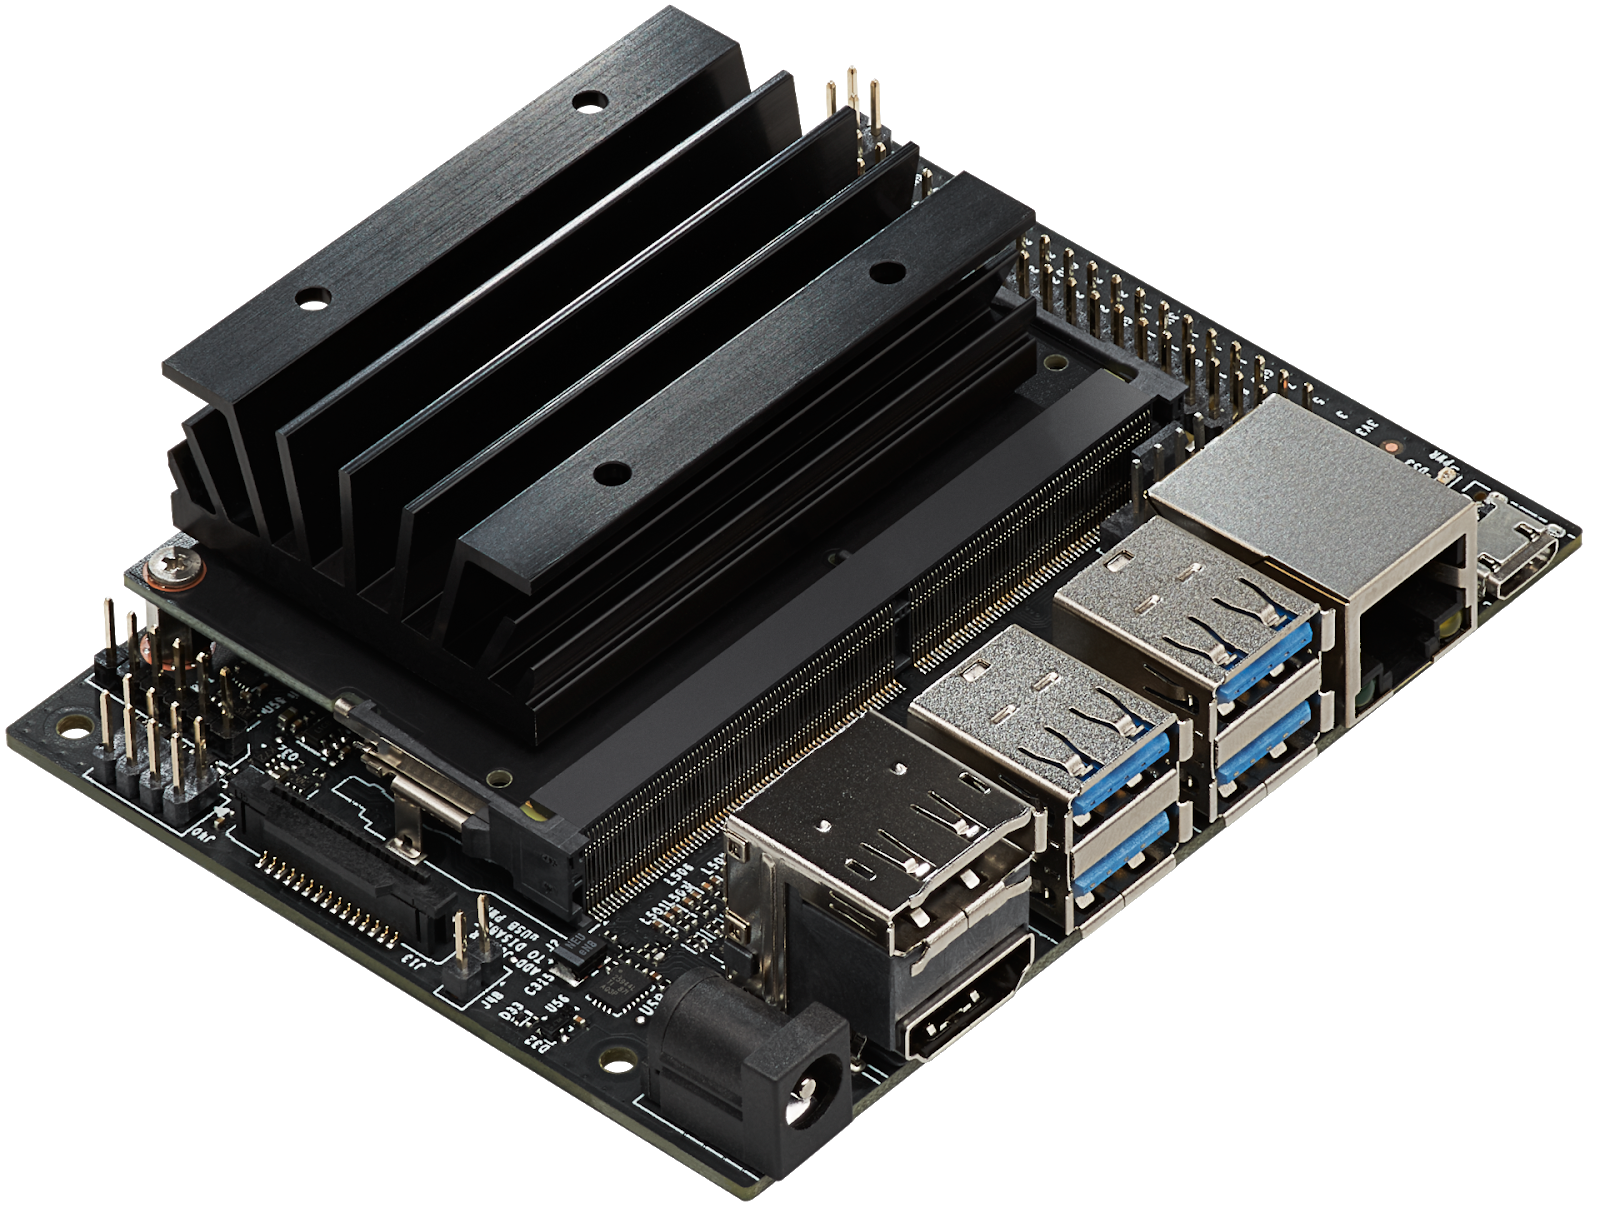 Jetson Nano Brings AI Computing to Everyone | NVIDIA Developer Blog